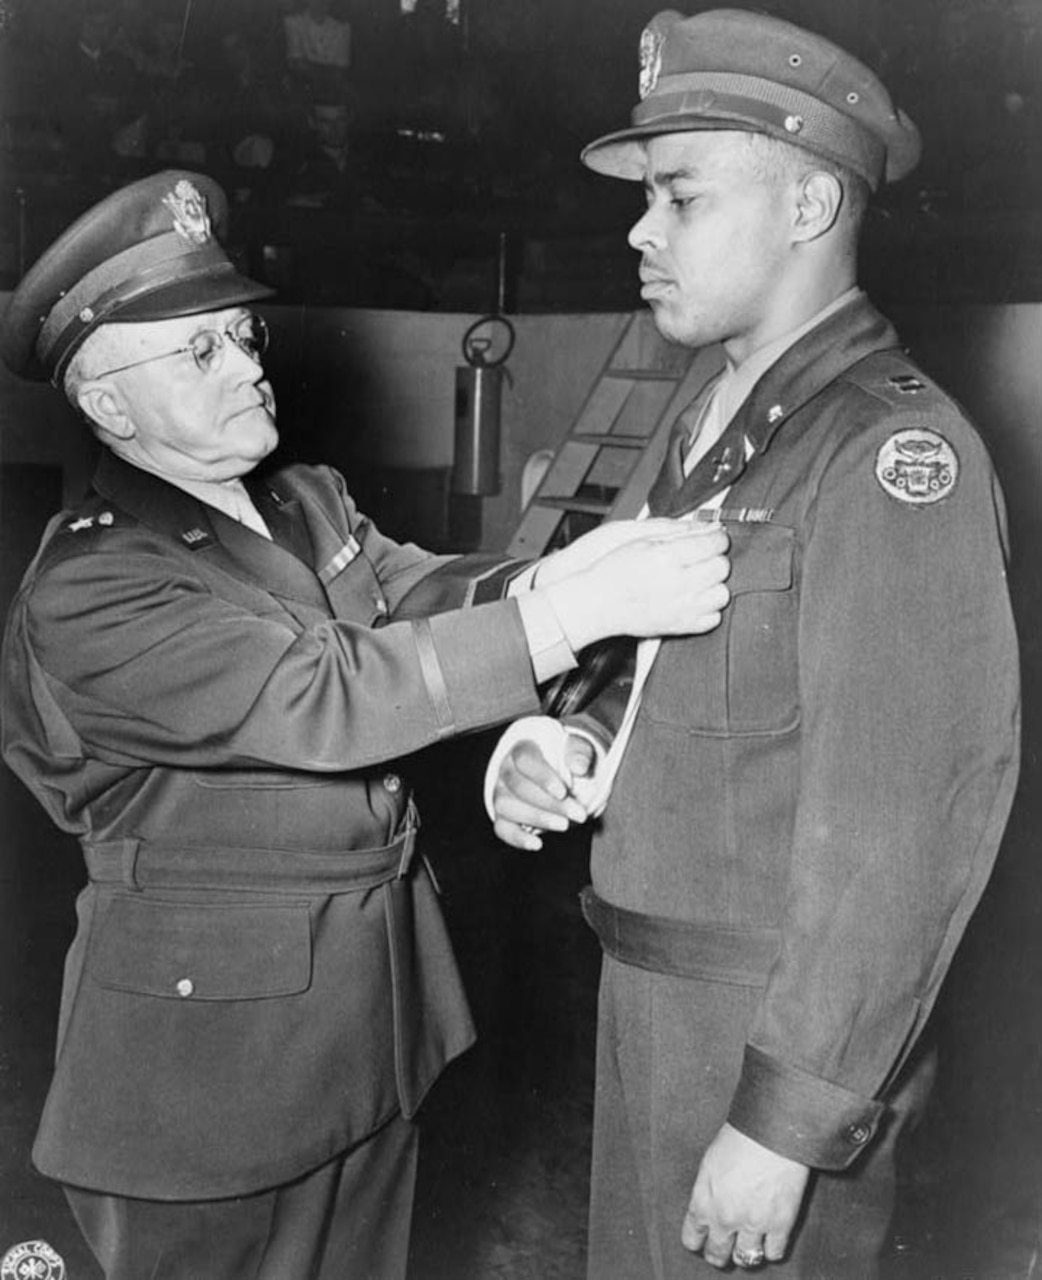 A man in an officer's uniform pins a medal to the lapel of the uniform worn by a man whose arm is in a sling.